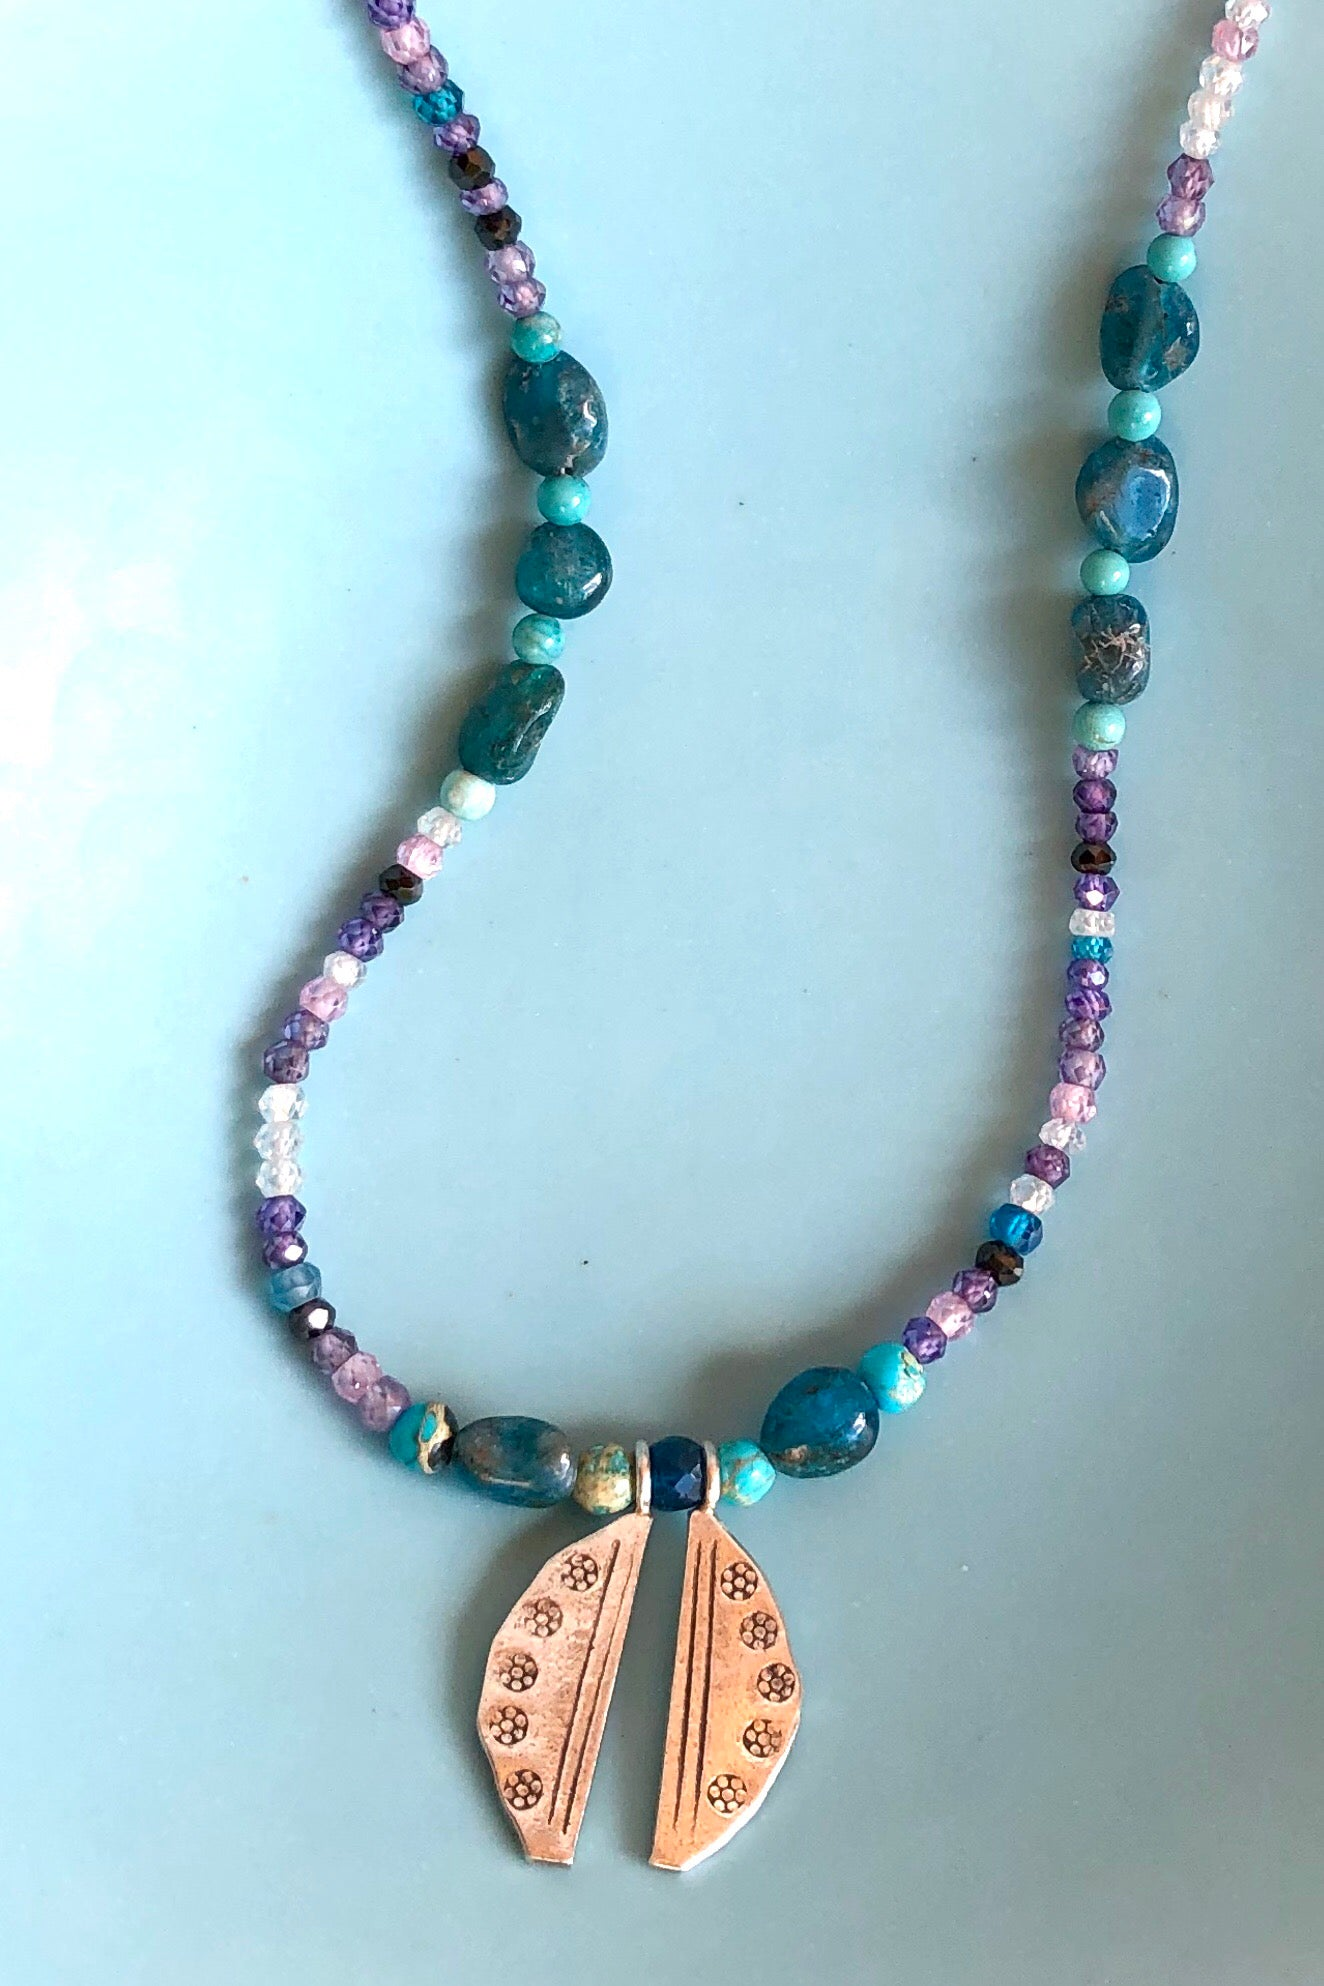 The Necklace Cay Friendship Amulet is exclusive handmade necklace featuring natural blue apatite beads, tiny faceted semi precious stones, turquoise howlite and Turkish glass beads.